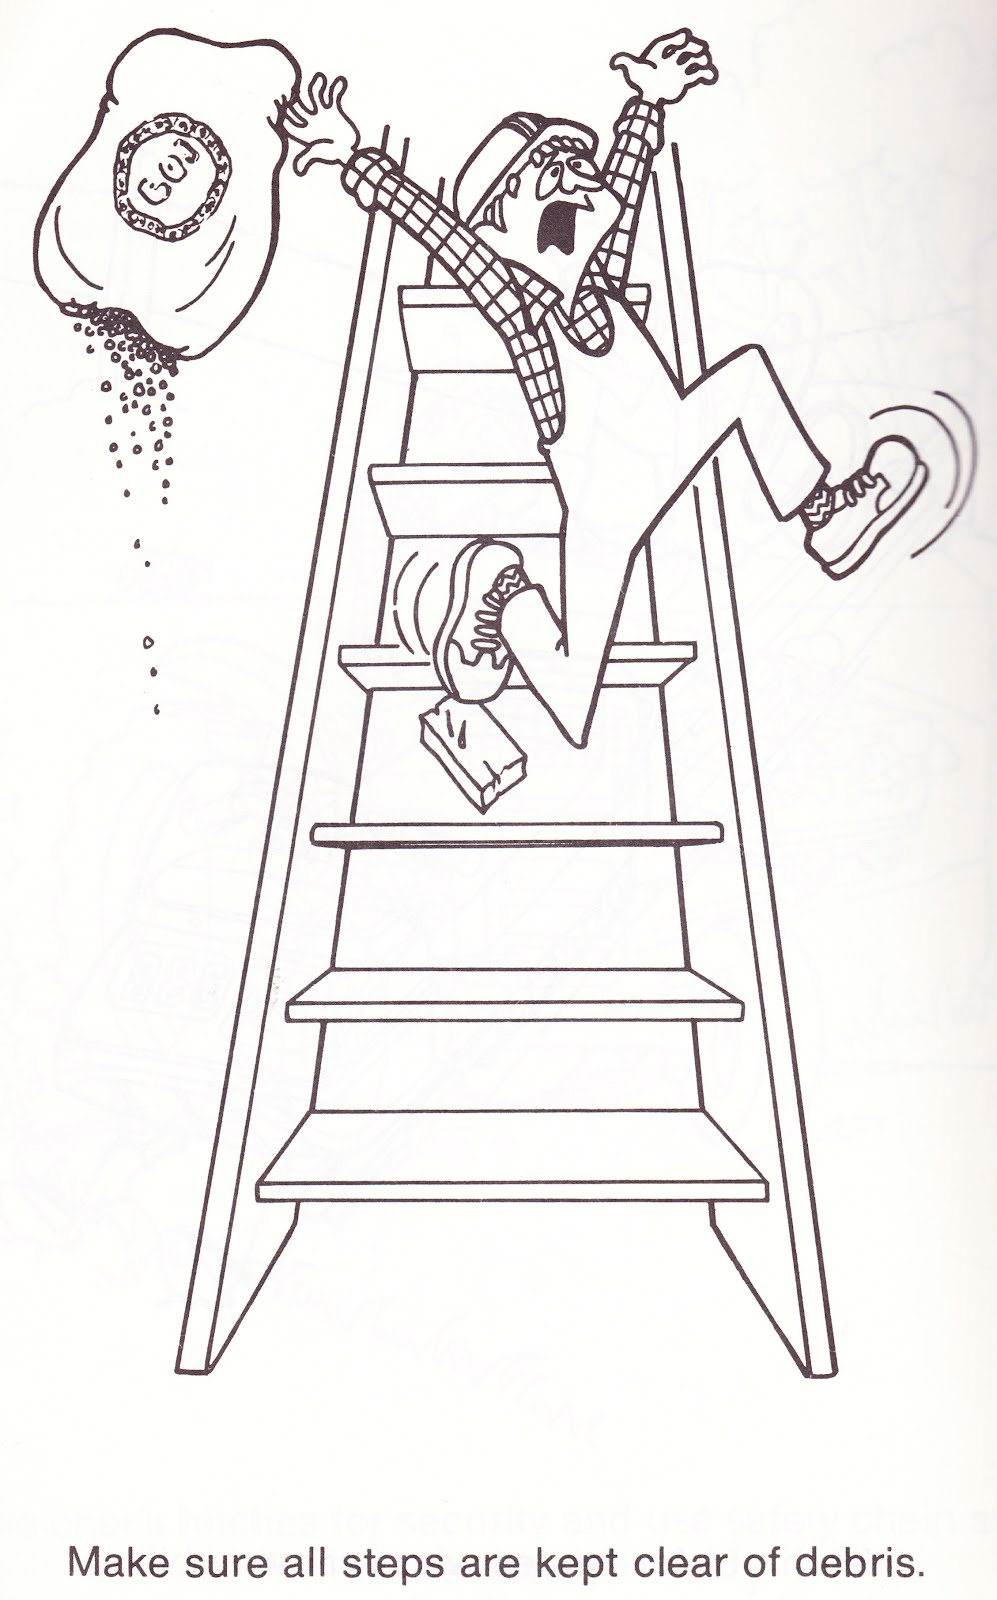 morbid coloring pages - photo#49